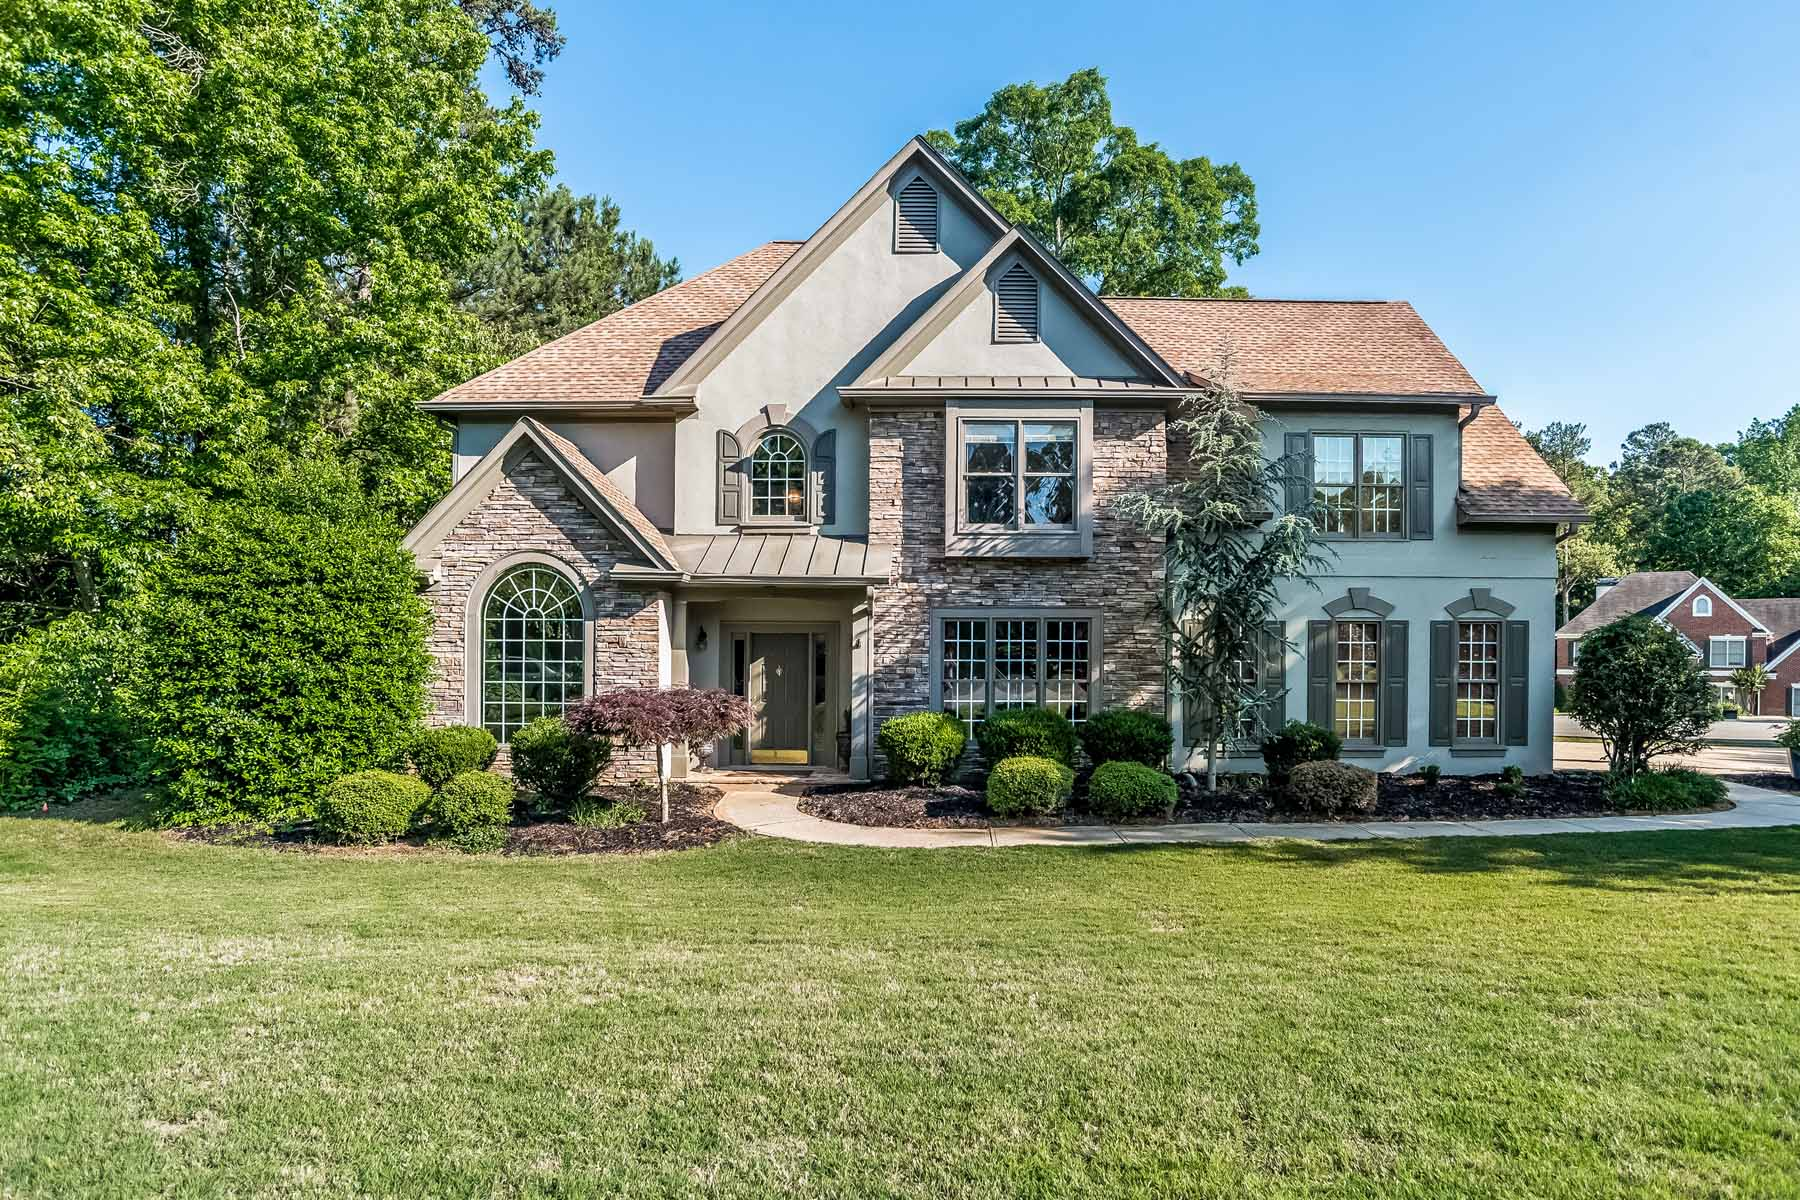 Villa per Vendita alle ore Magnificent Home In Sought After Lexington Woods 270 Leaf Ct Alpharetta, Georgia, 30005 Stati Uniti